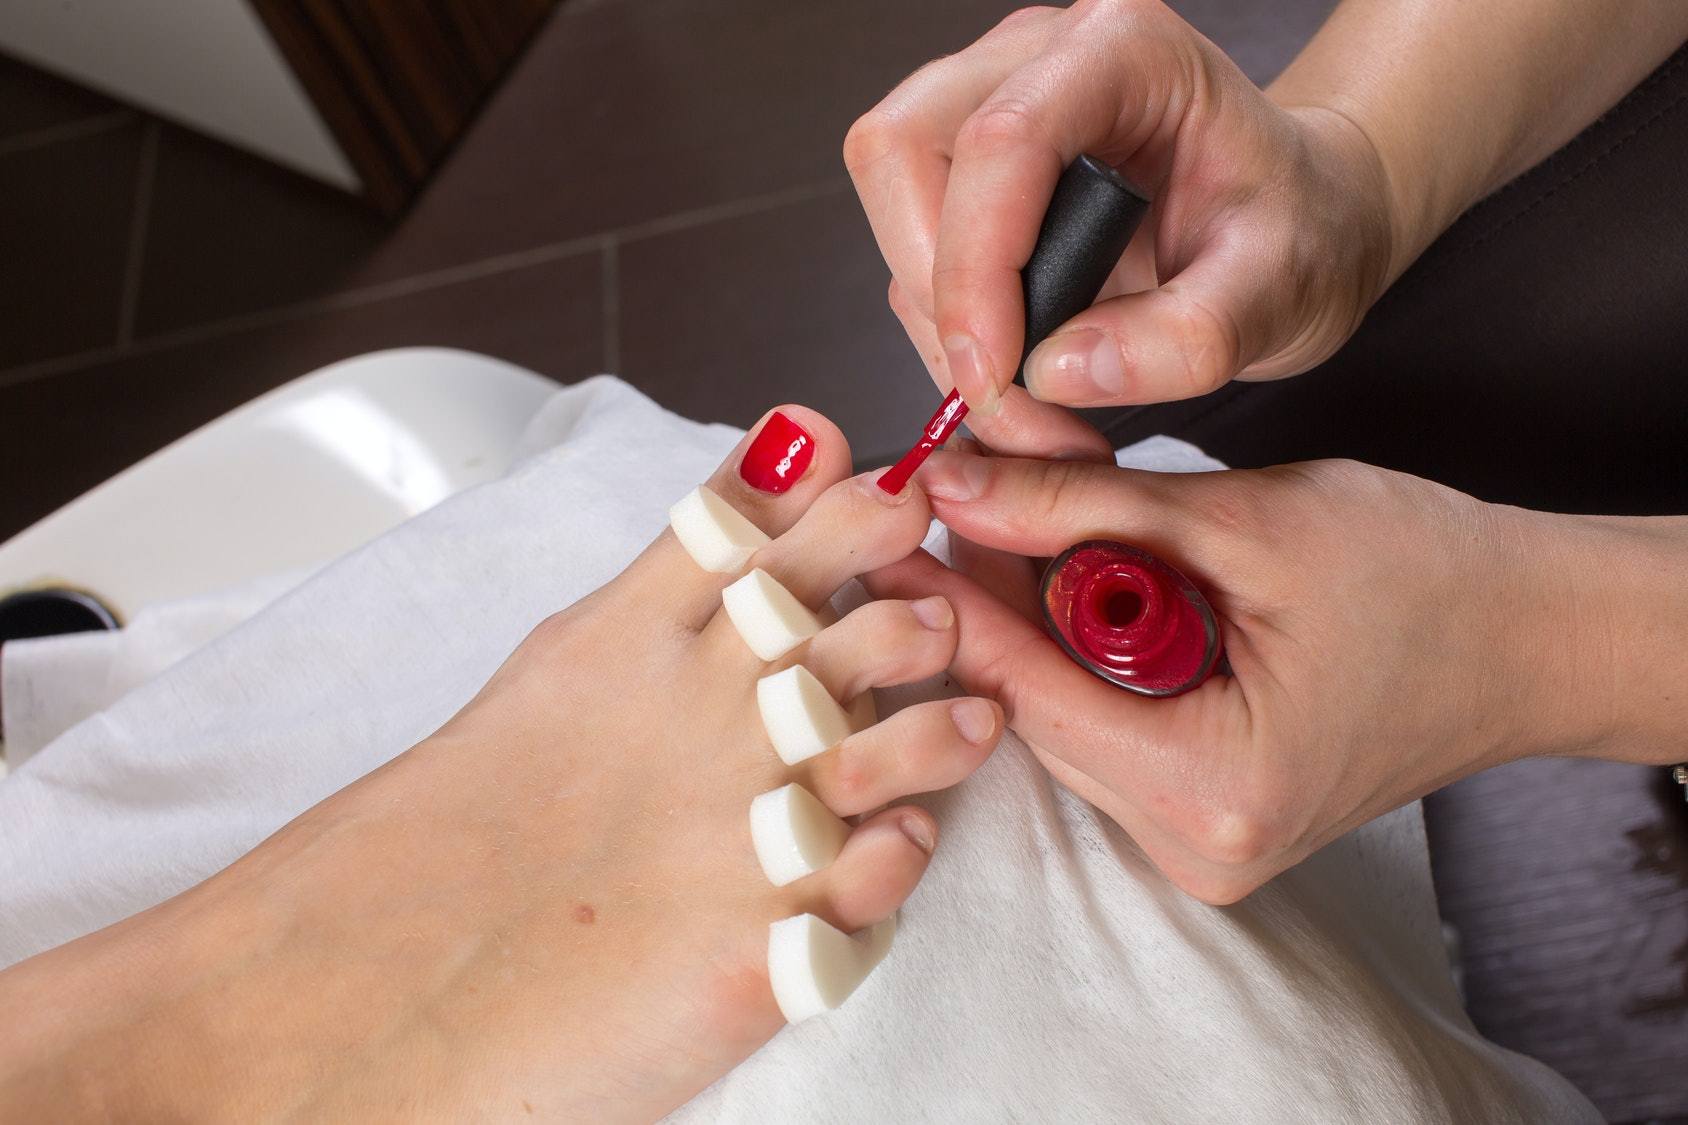 Many Salons Offer Manicure And Pedicure Packages At A Steep From The Individual Services Added Together Of Course They Re More Expensive Than An